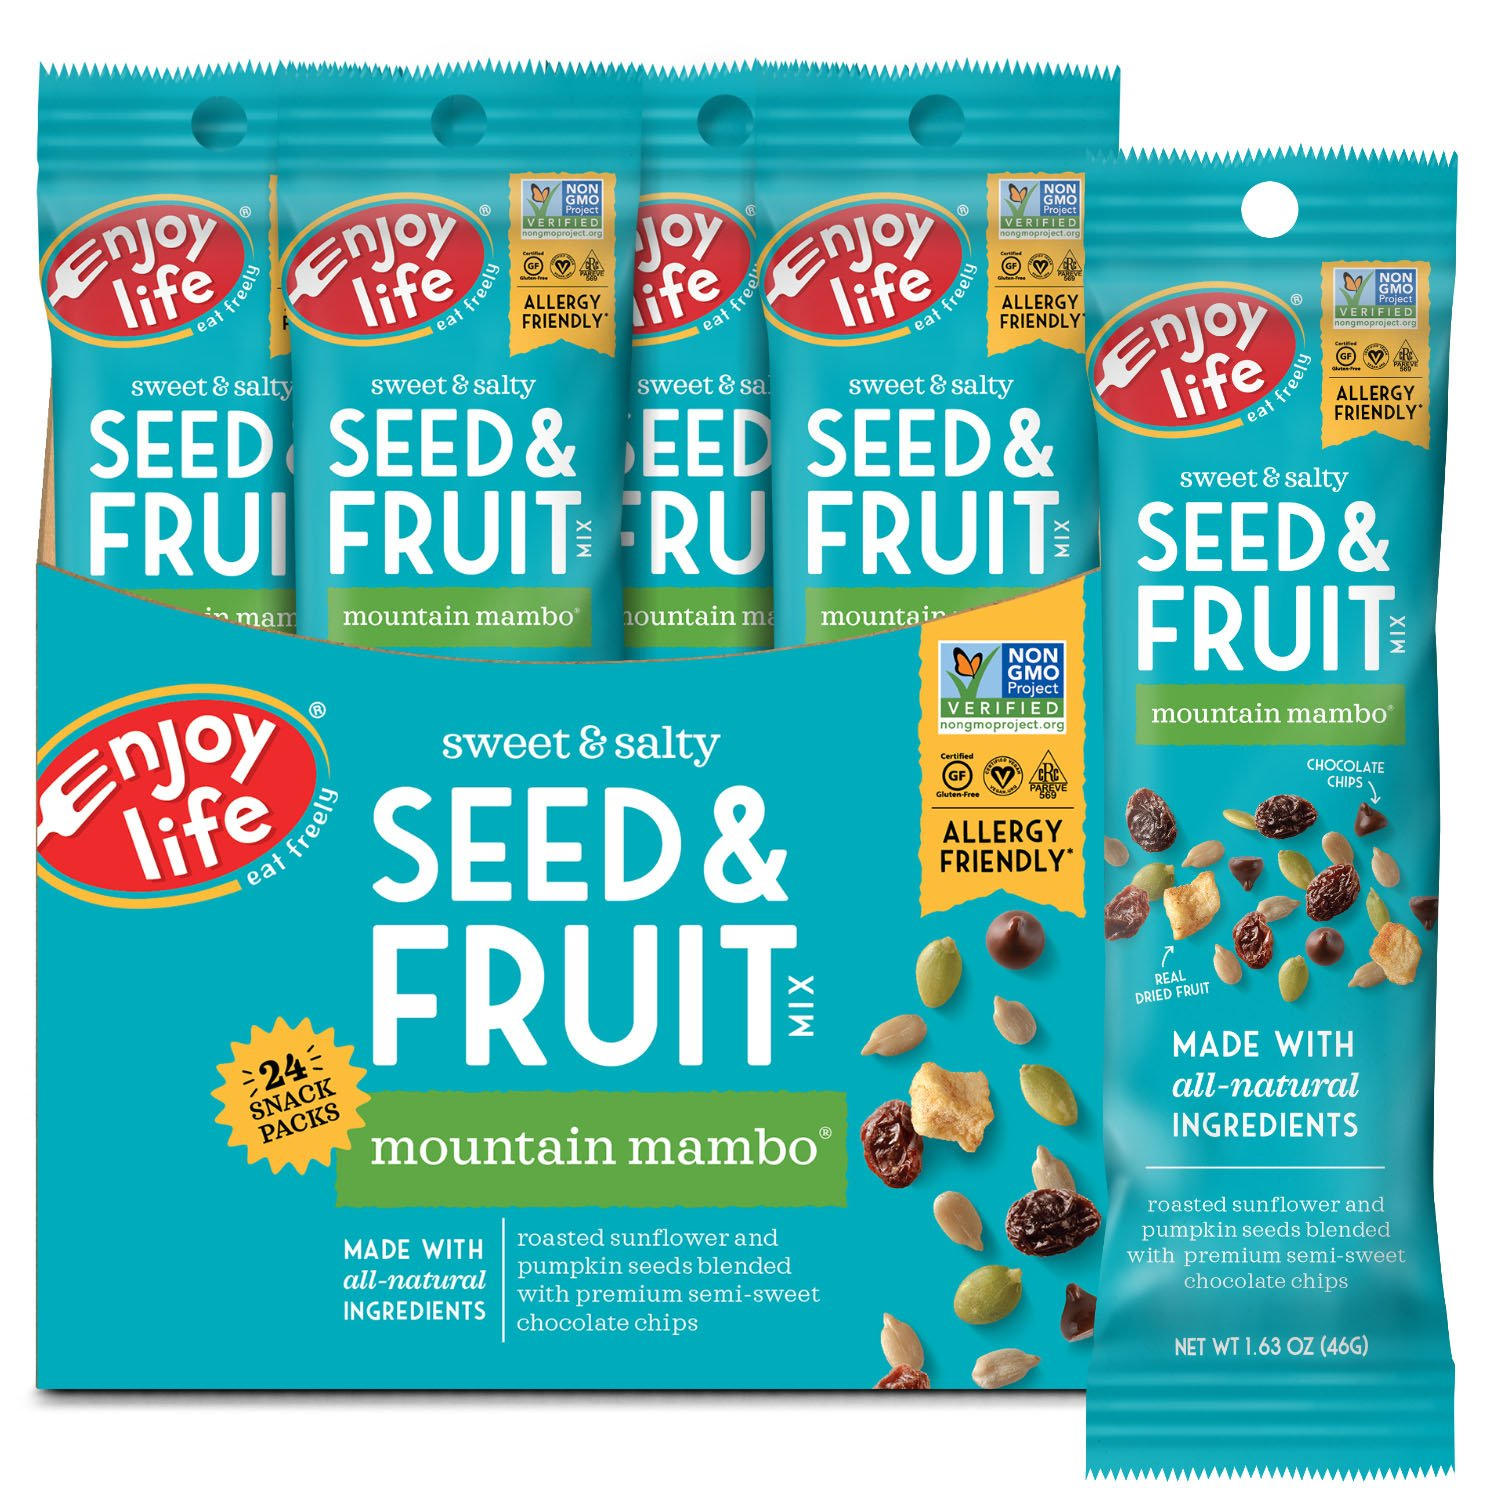 Enjoy Life Seed & Fruit Mix, Soy free, Nut free, Gluten free, Dairy free, Non GMO, Vegan, Mountain Mambo, 1.63 Ounce Bags (Pack of 24) by Enjoy Life Foods